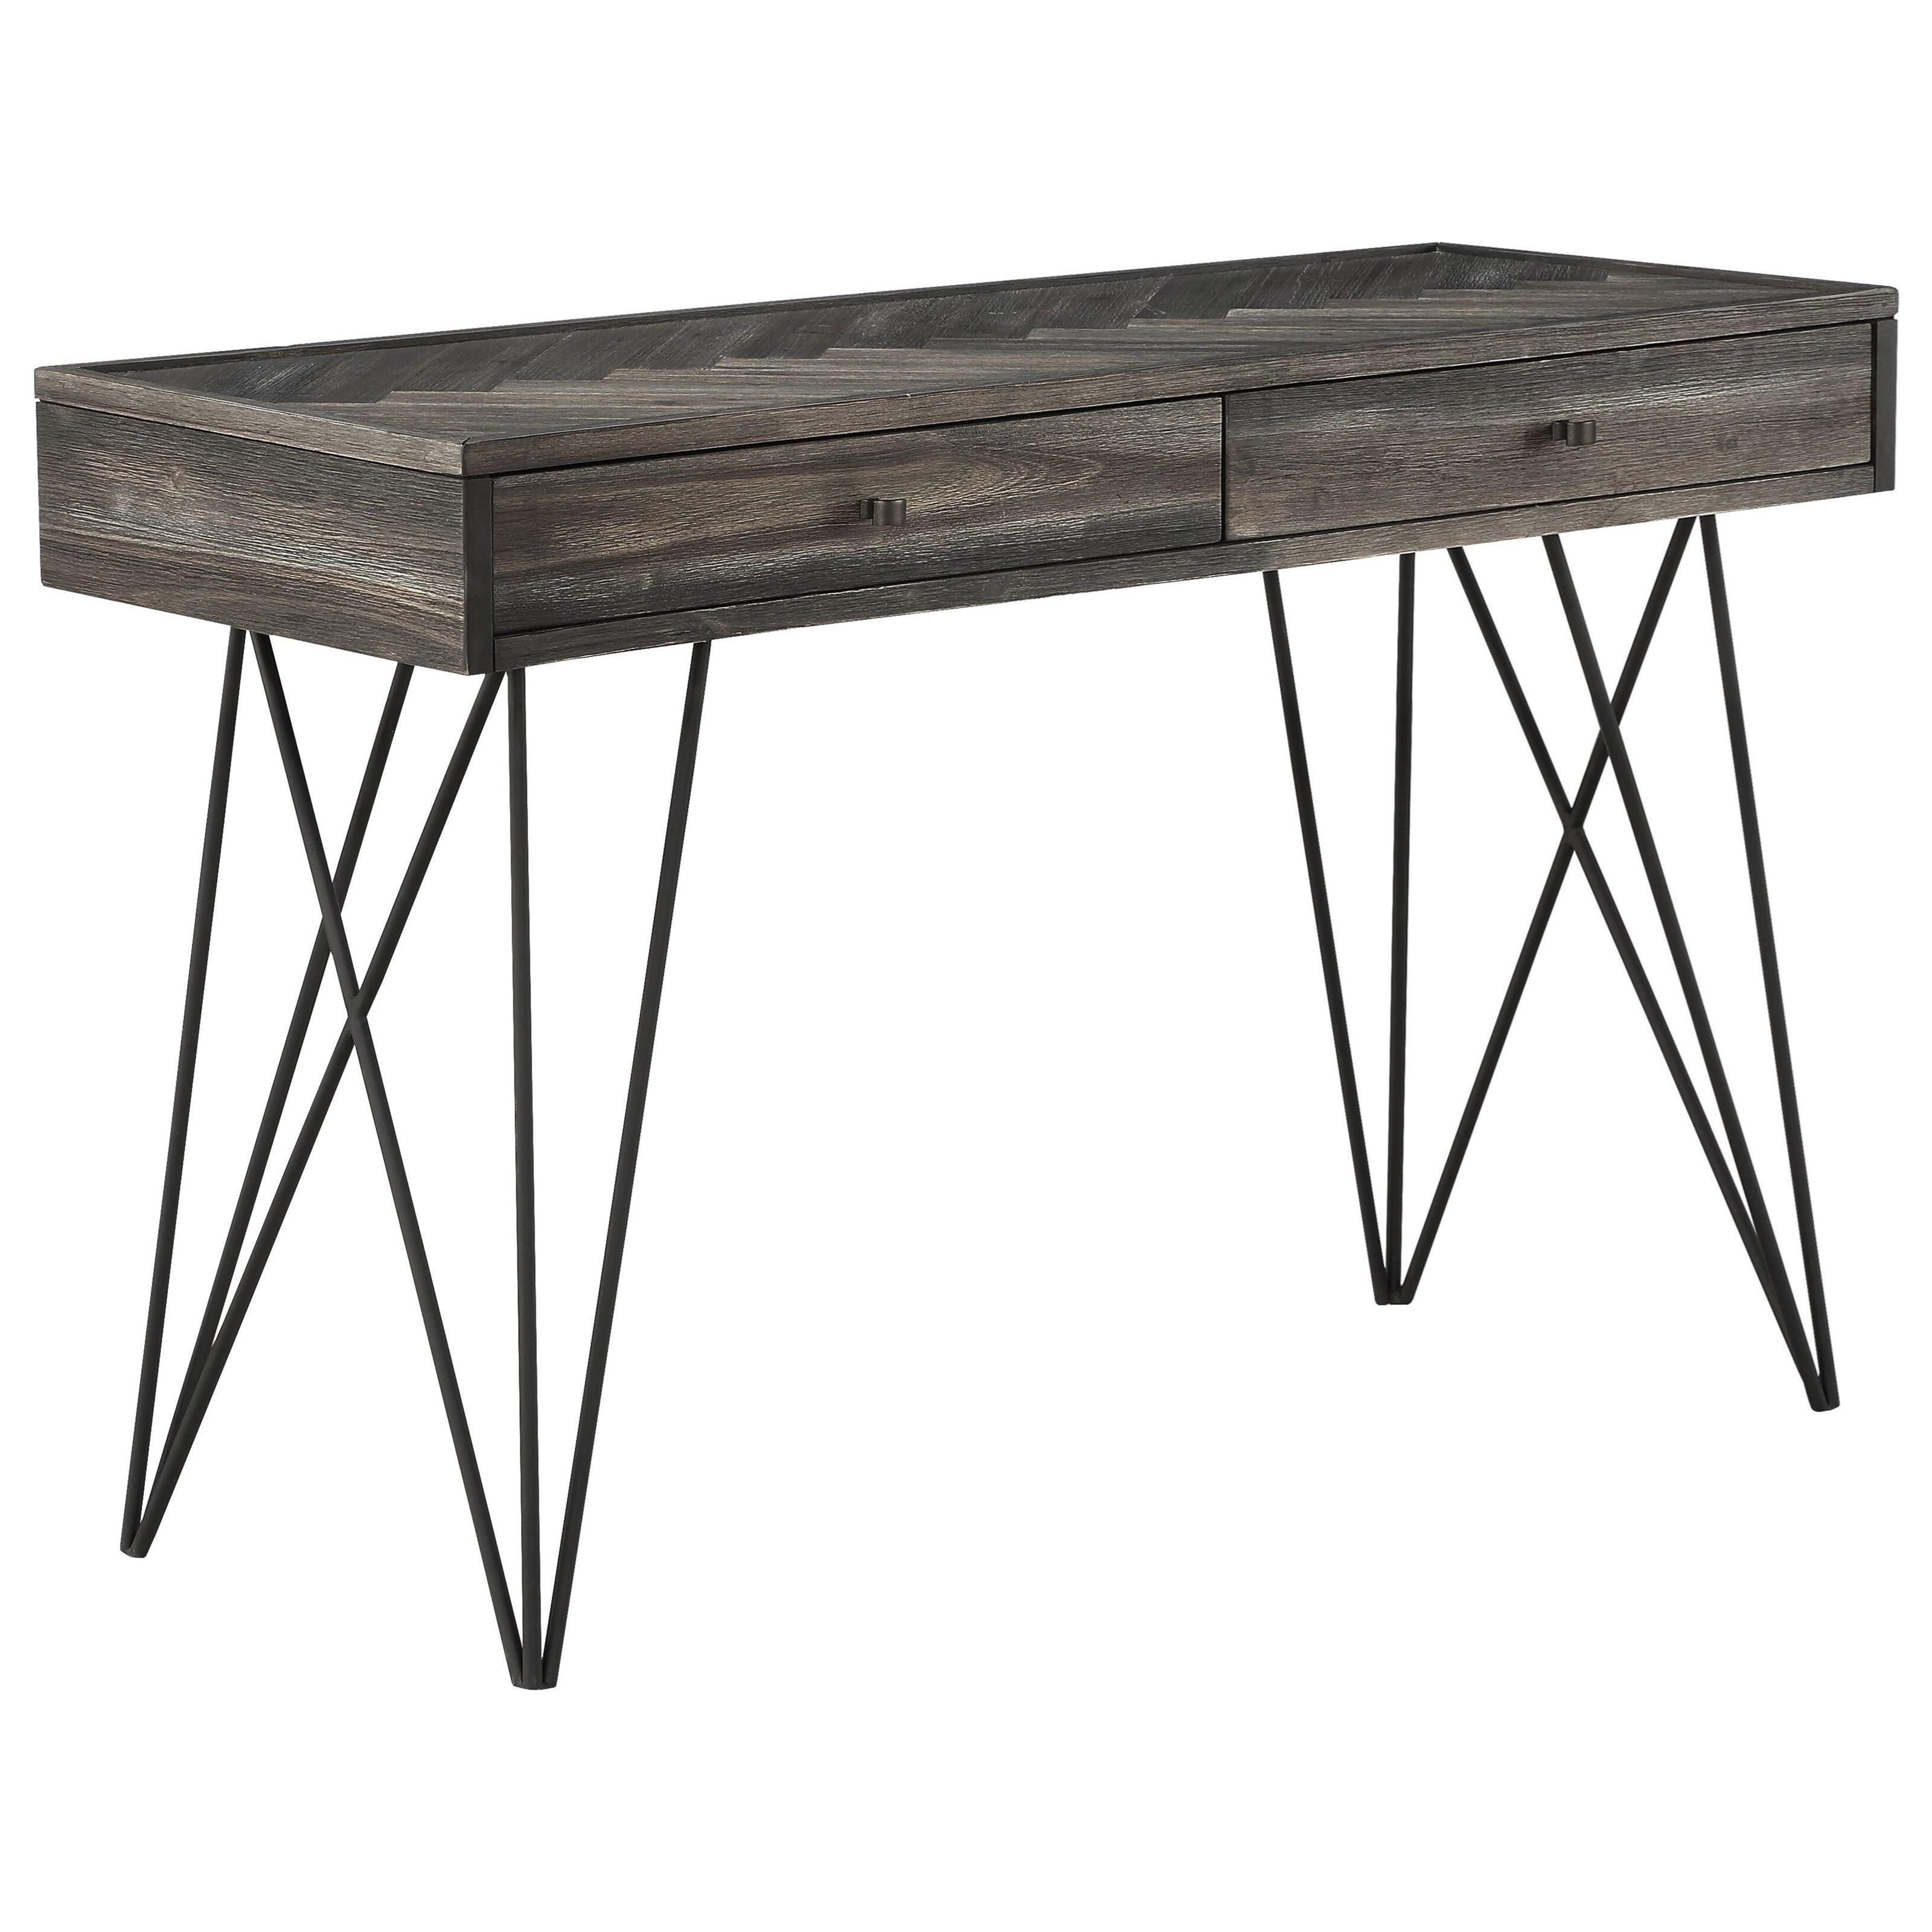 Aspen Court 2-Drawer Console Table by Coast to Coast Imports at Baer's Furniture